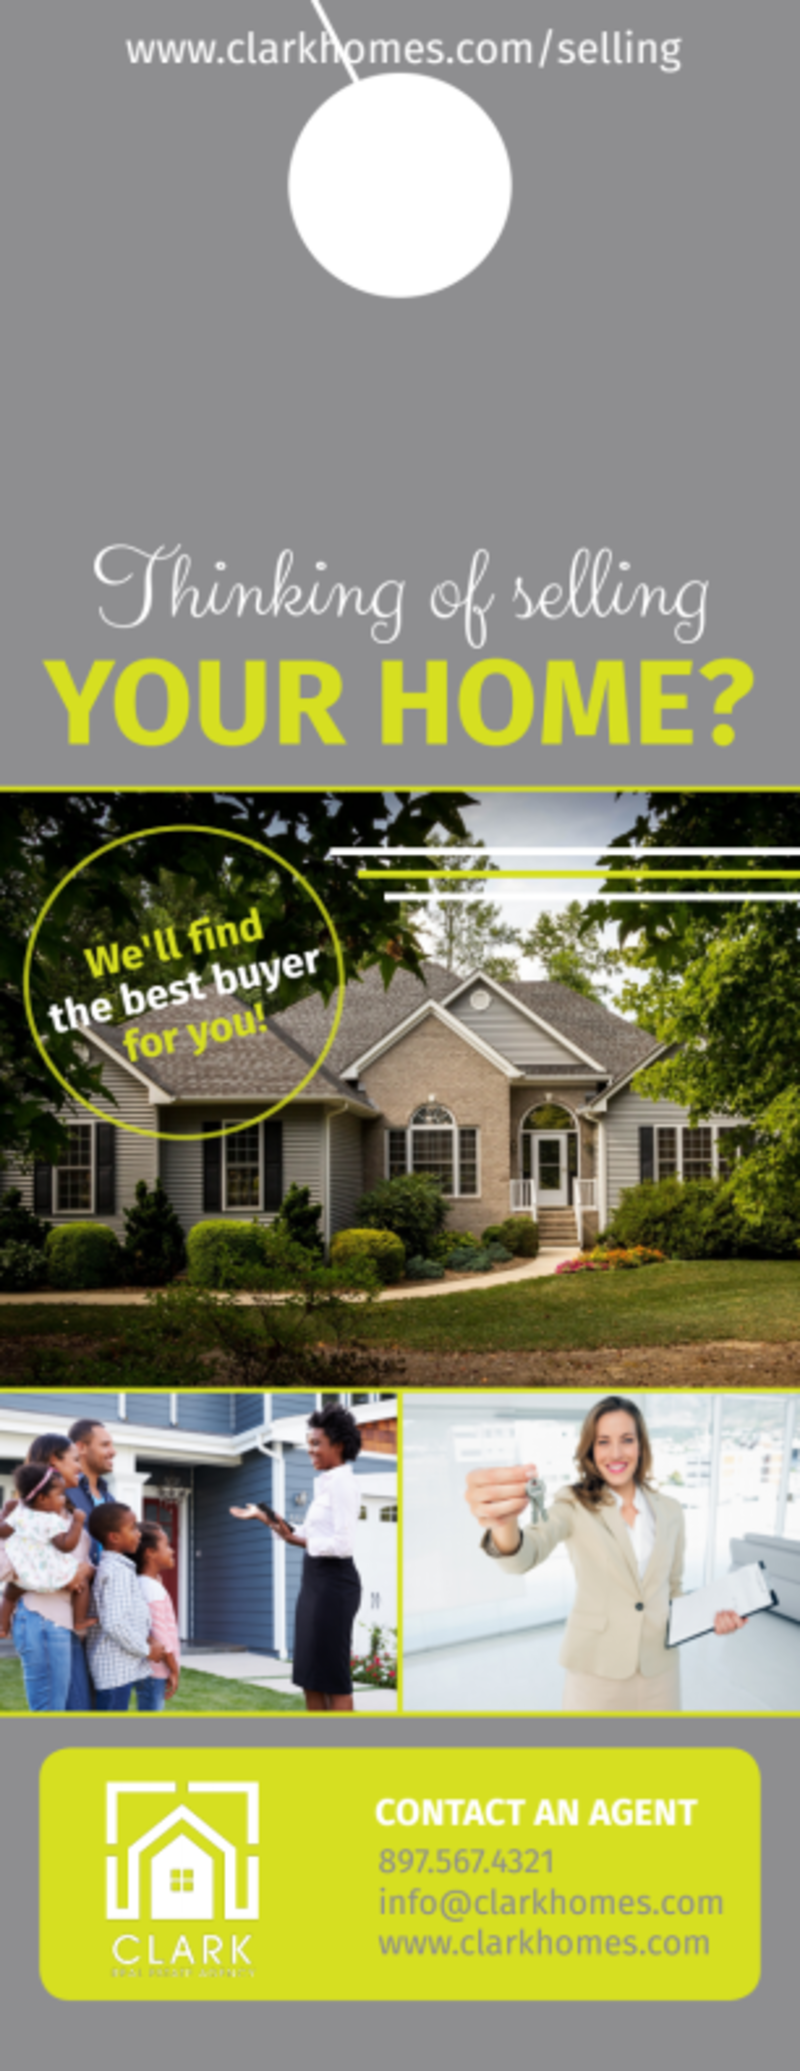 Thinking Of Selling Your Home - Door Hanger Template Preview 2